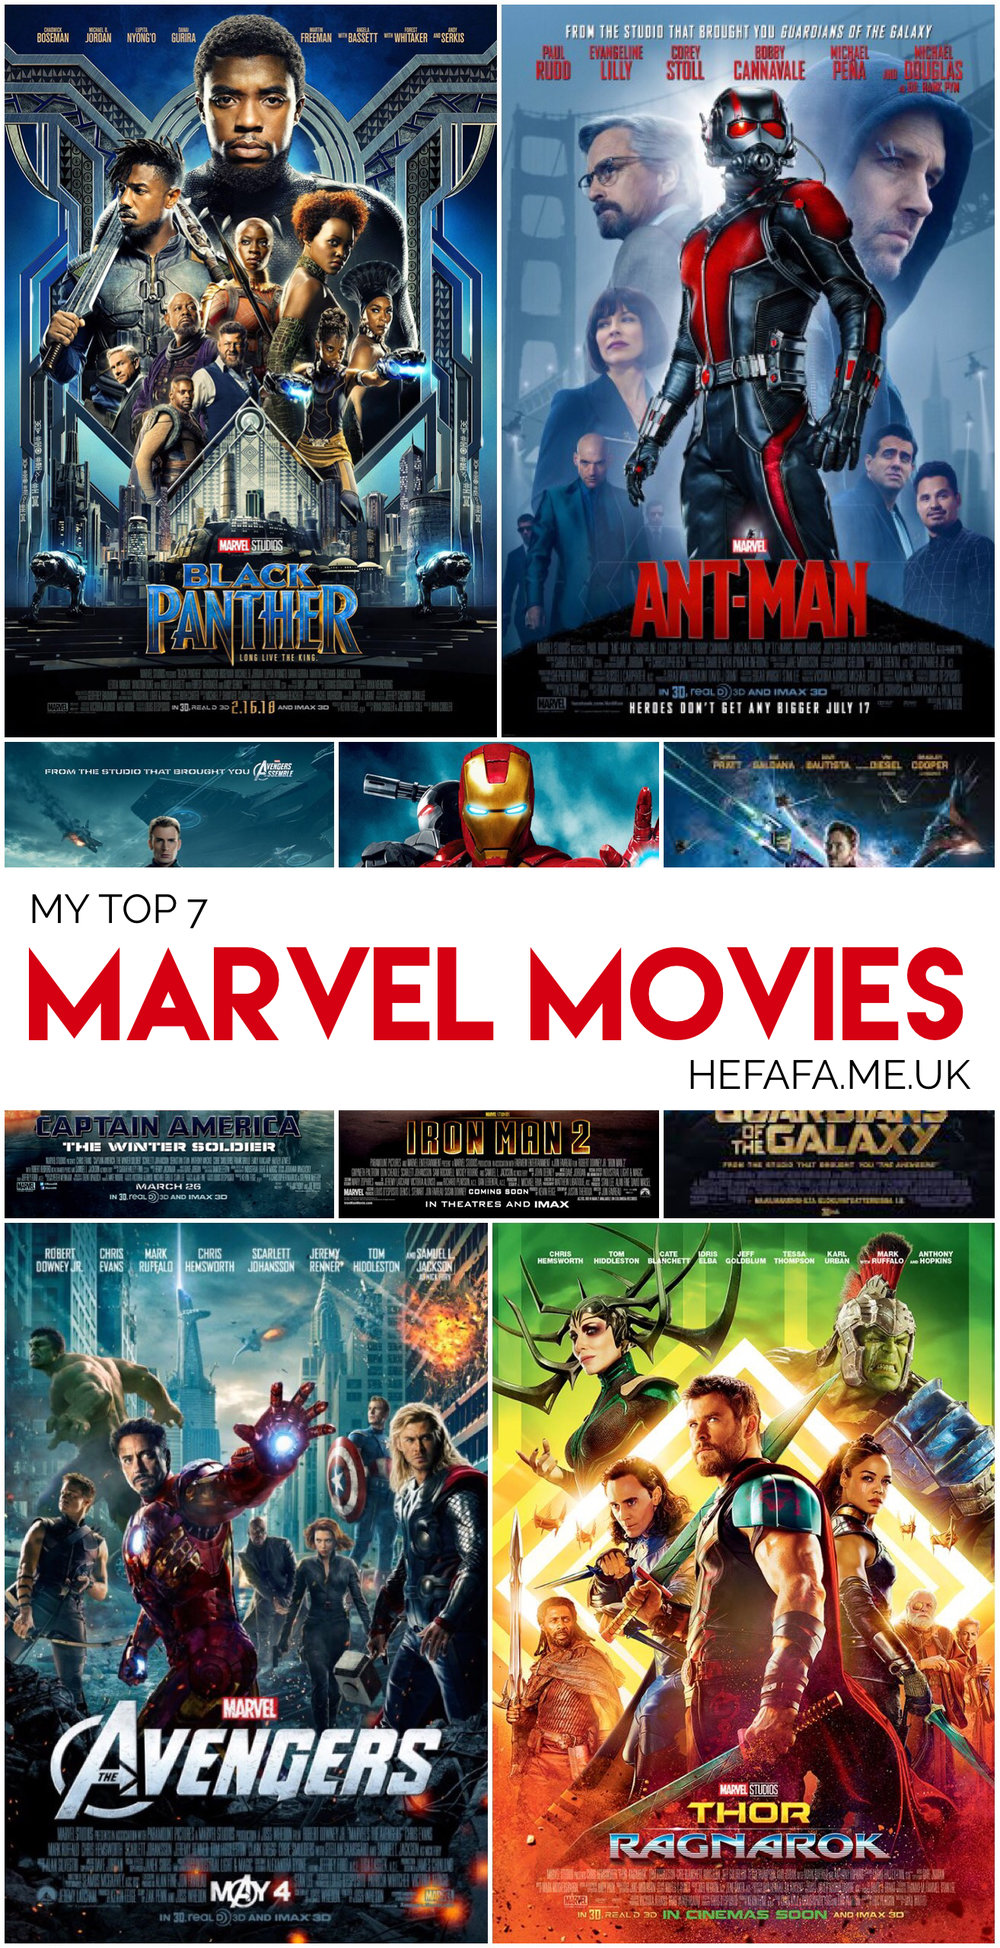 My Top 7 Marvel Movies - Heather on hefafa.me.uk